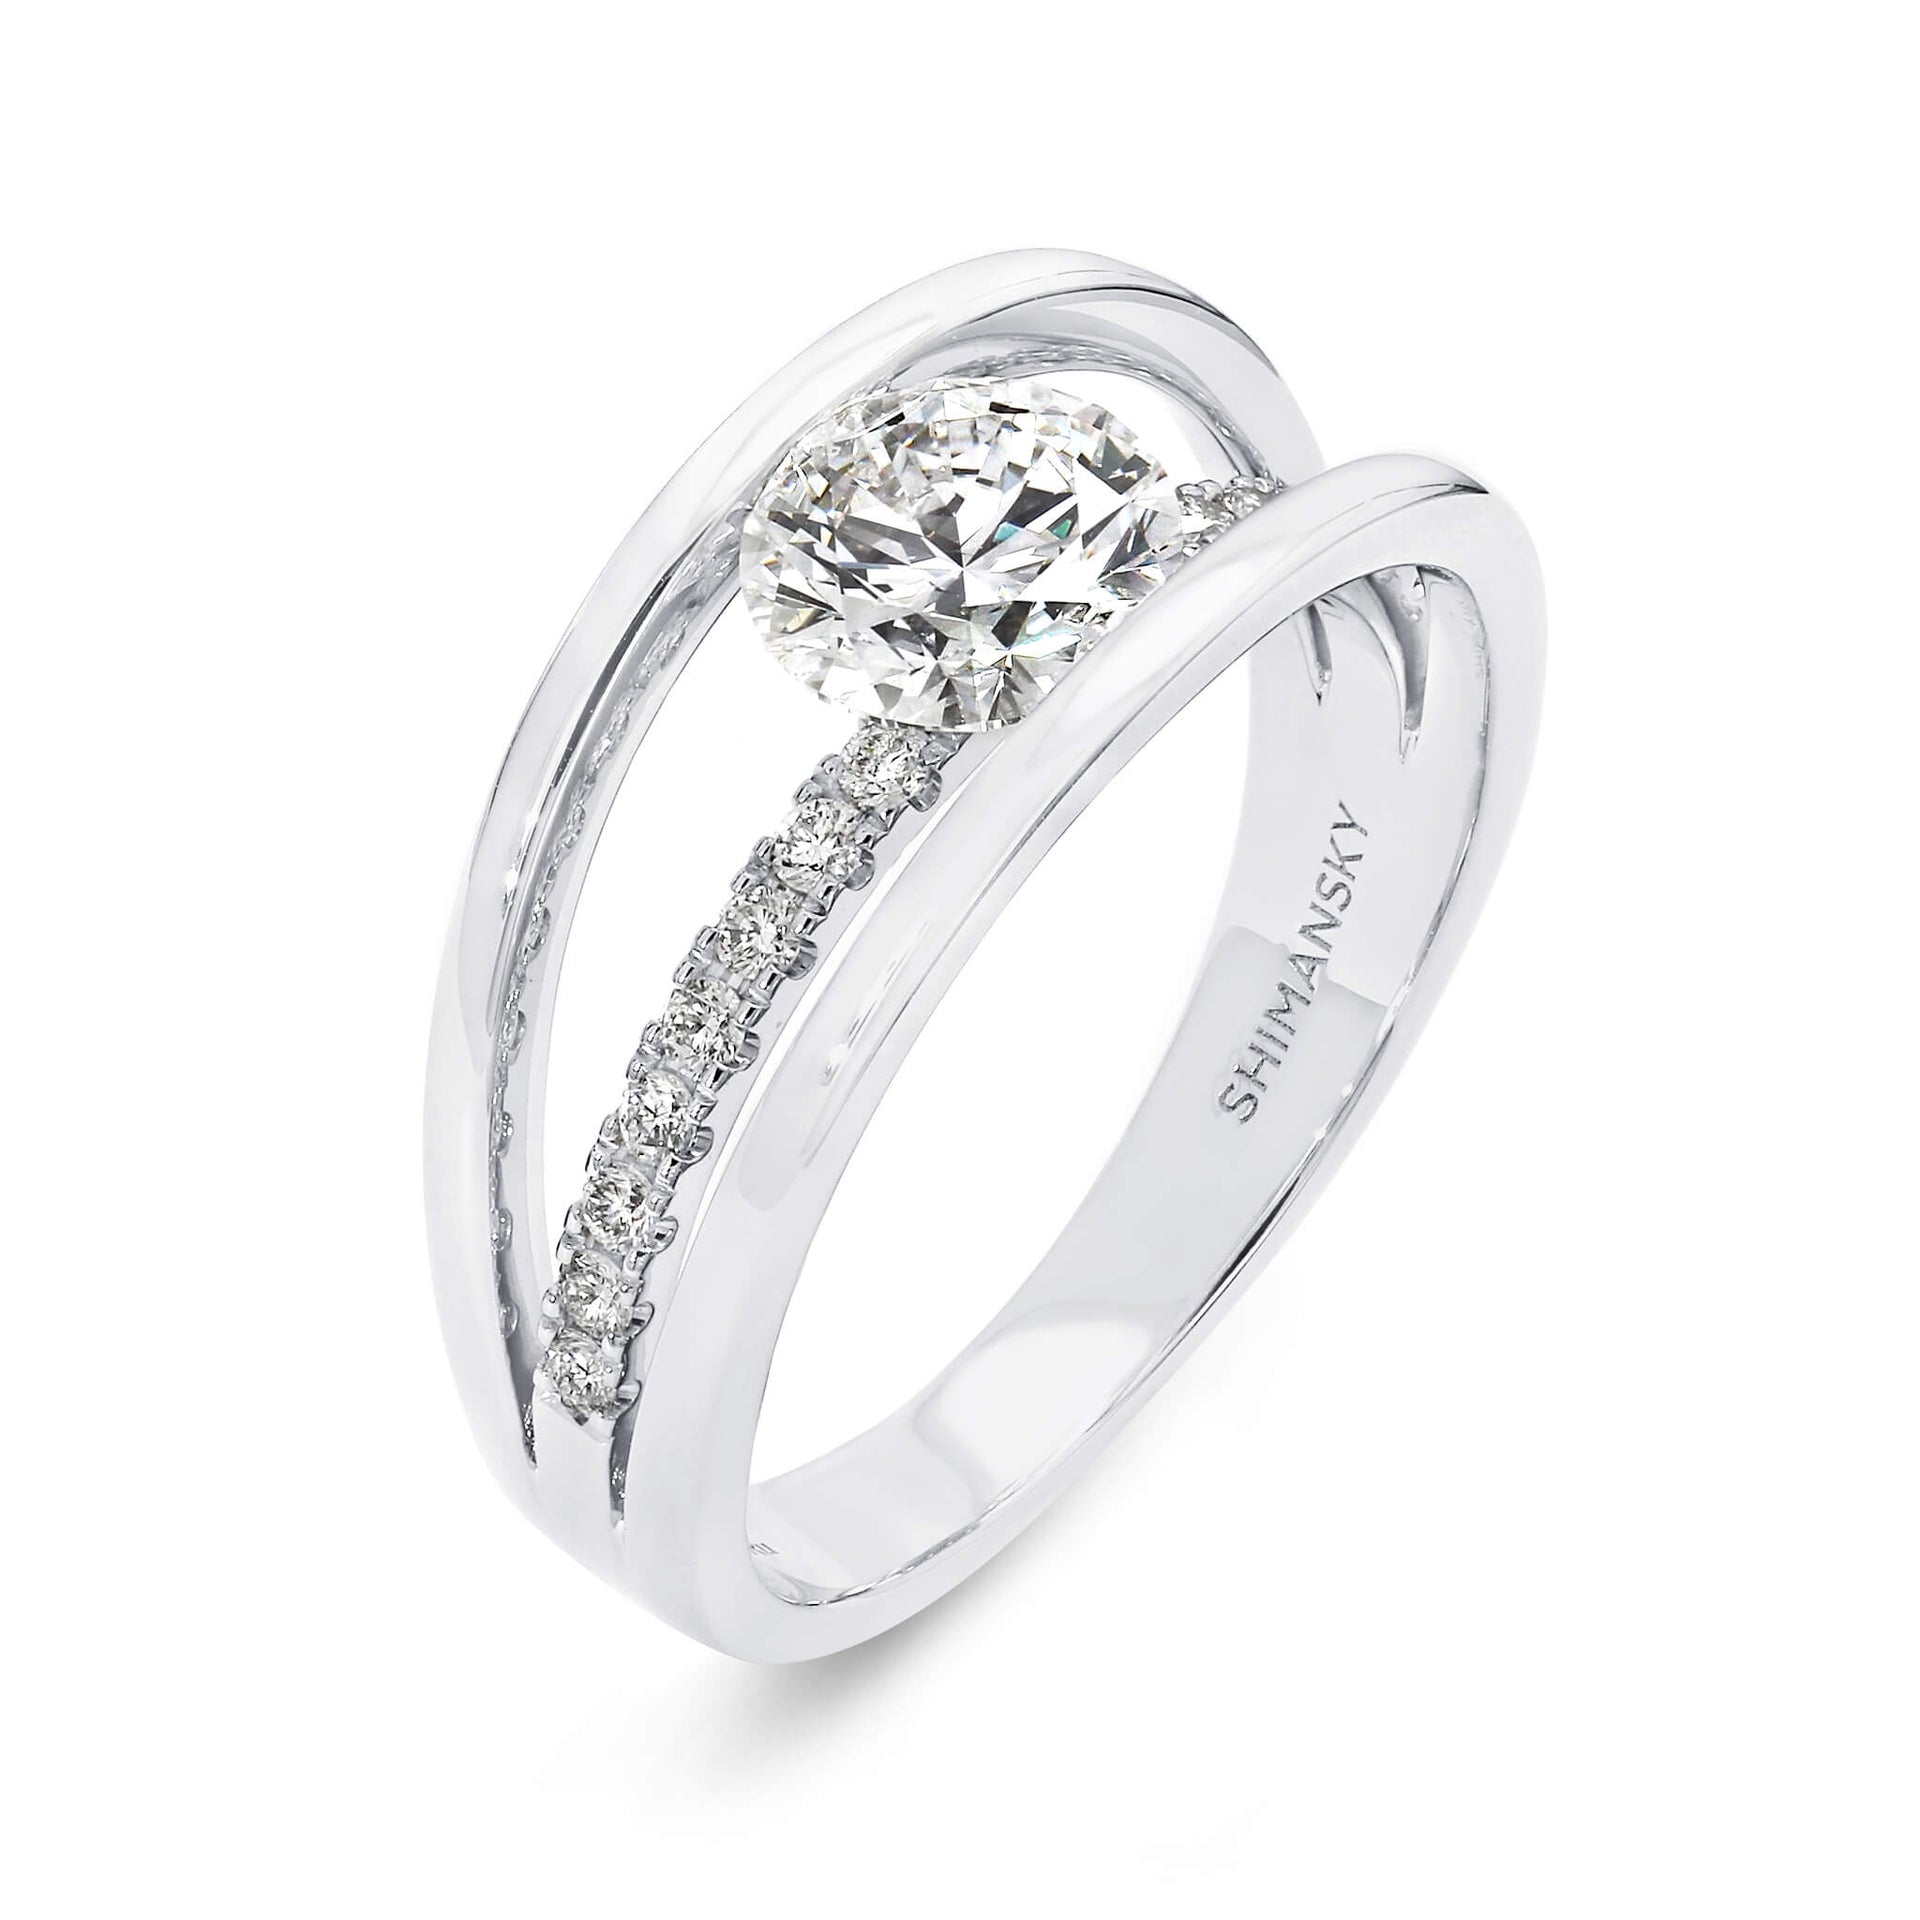 1.22 Carat Evolym Micro Set Diamond Engagement Ring in Platinum 3D View